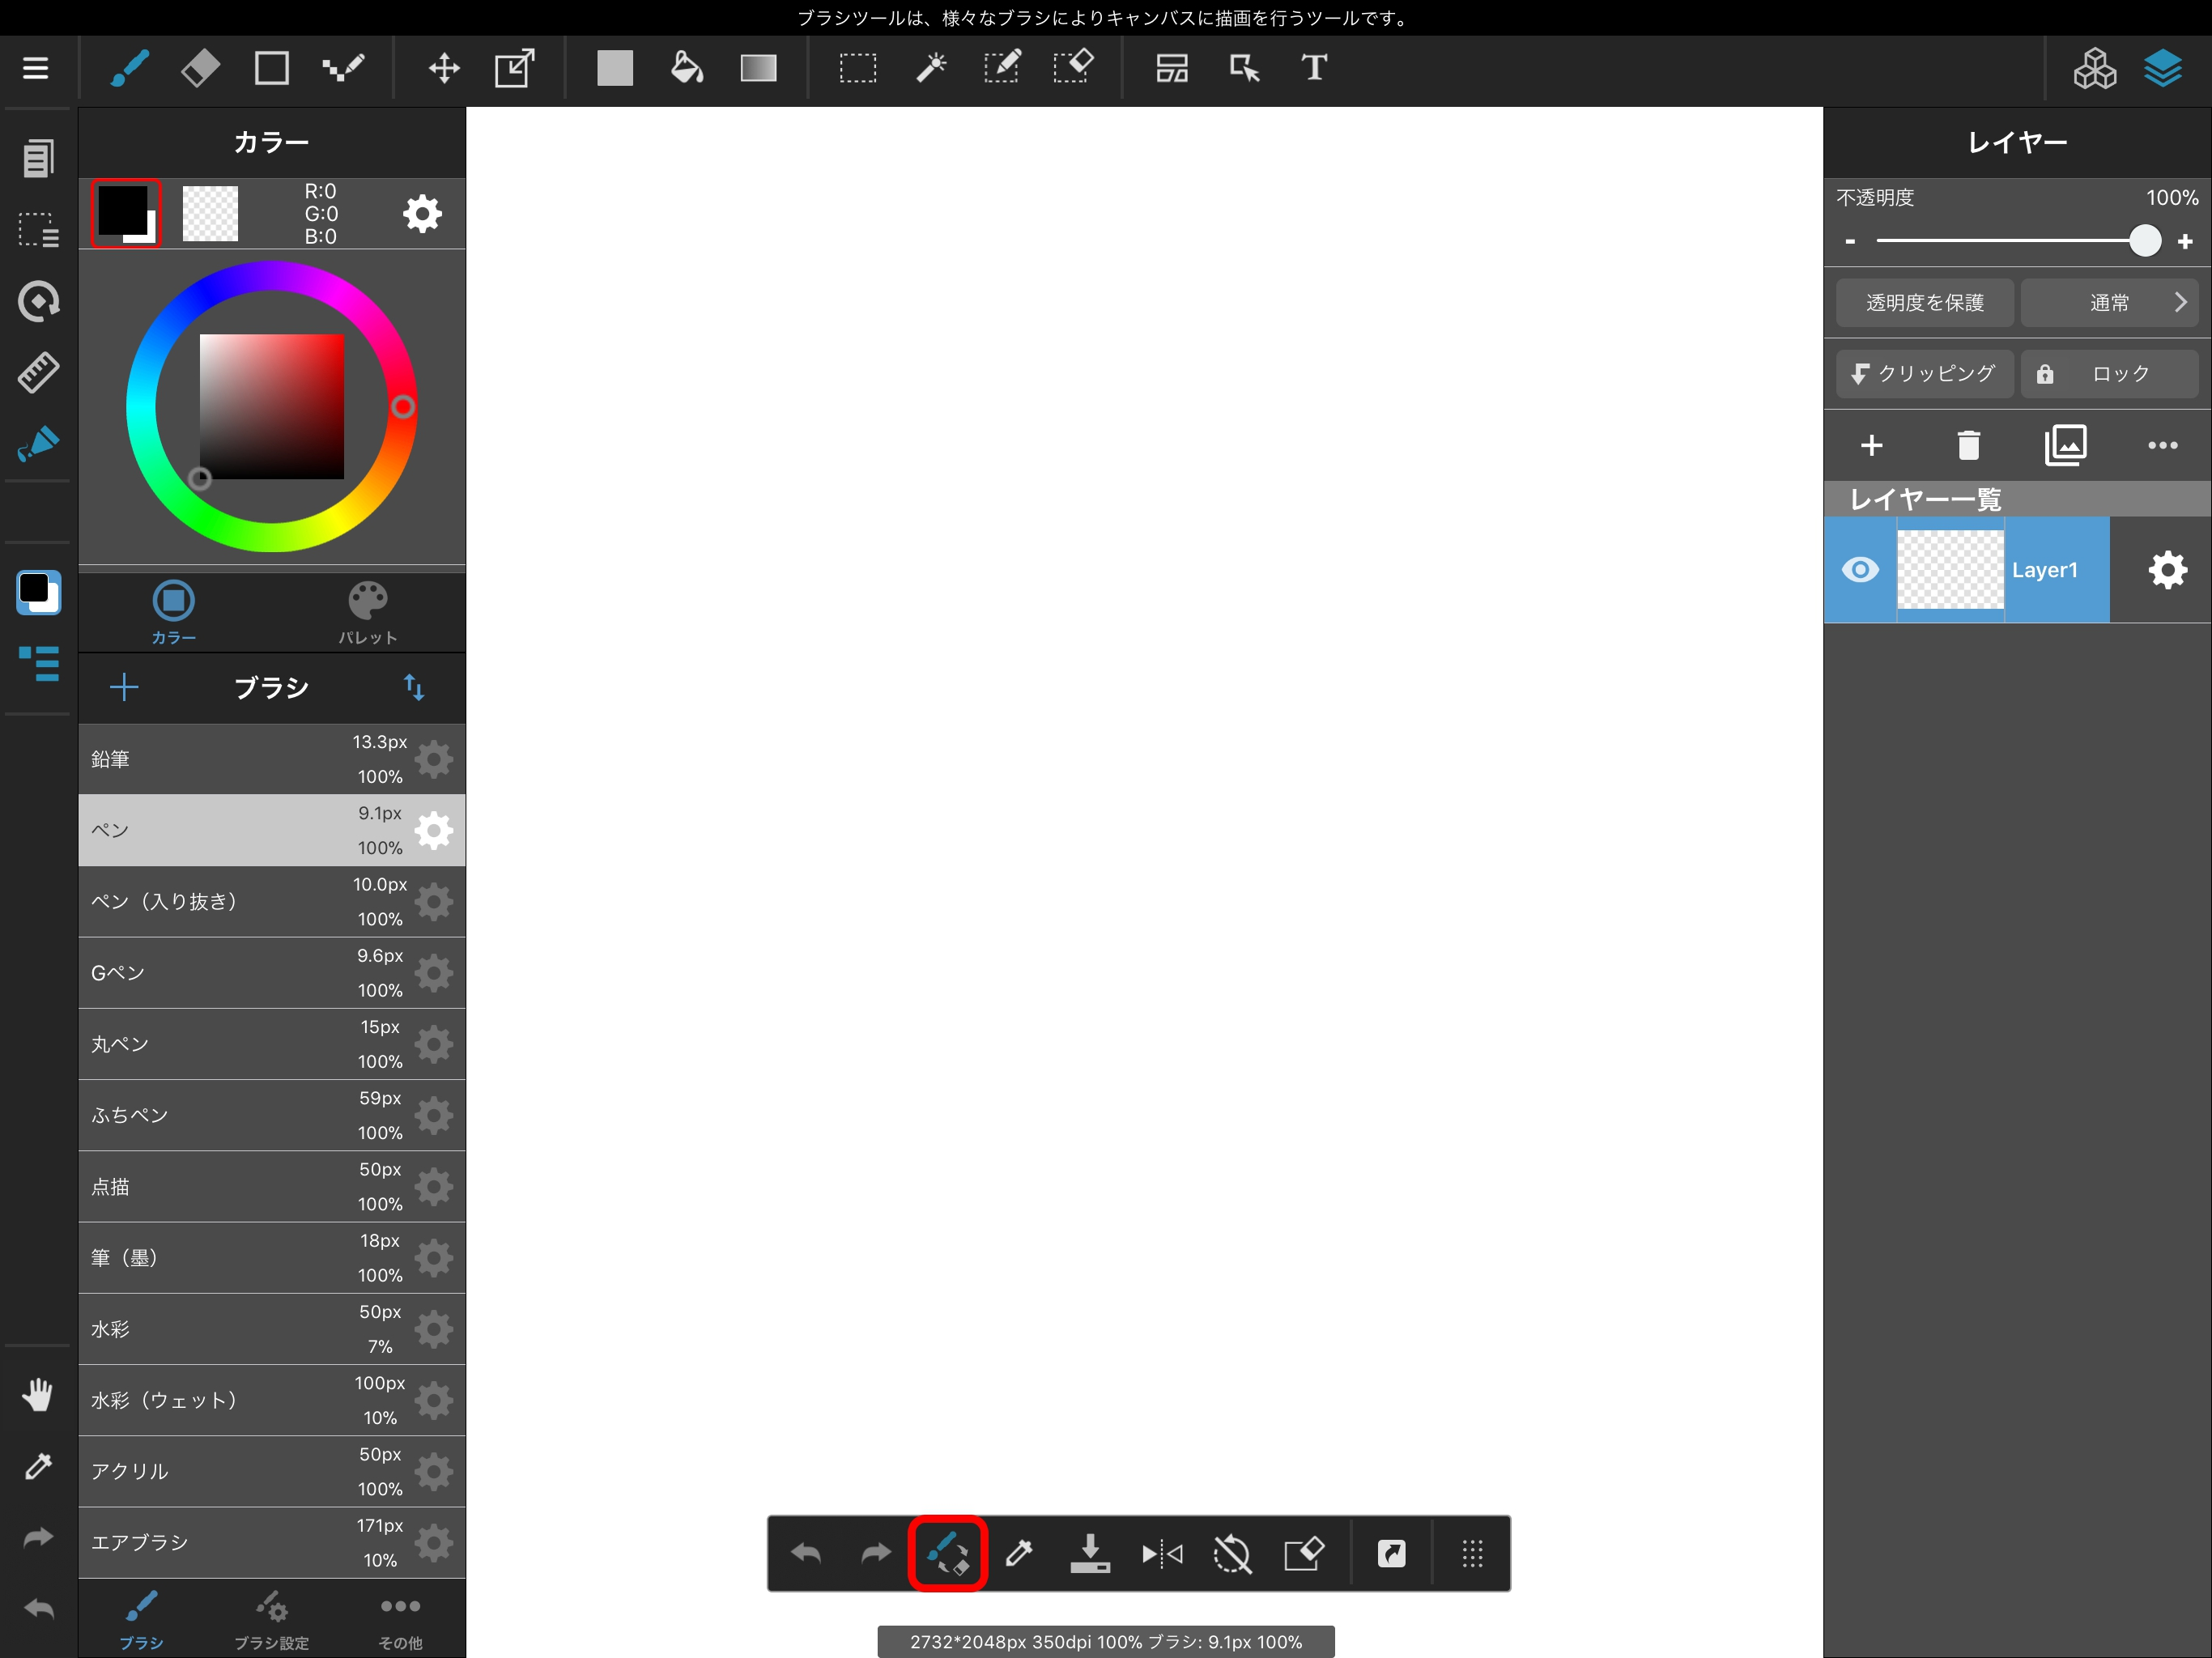 The icon for changing Brushes and Erasers on the Shortcut Bar